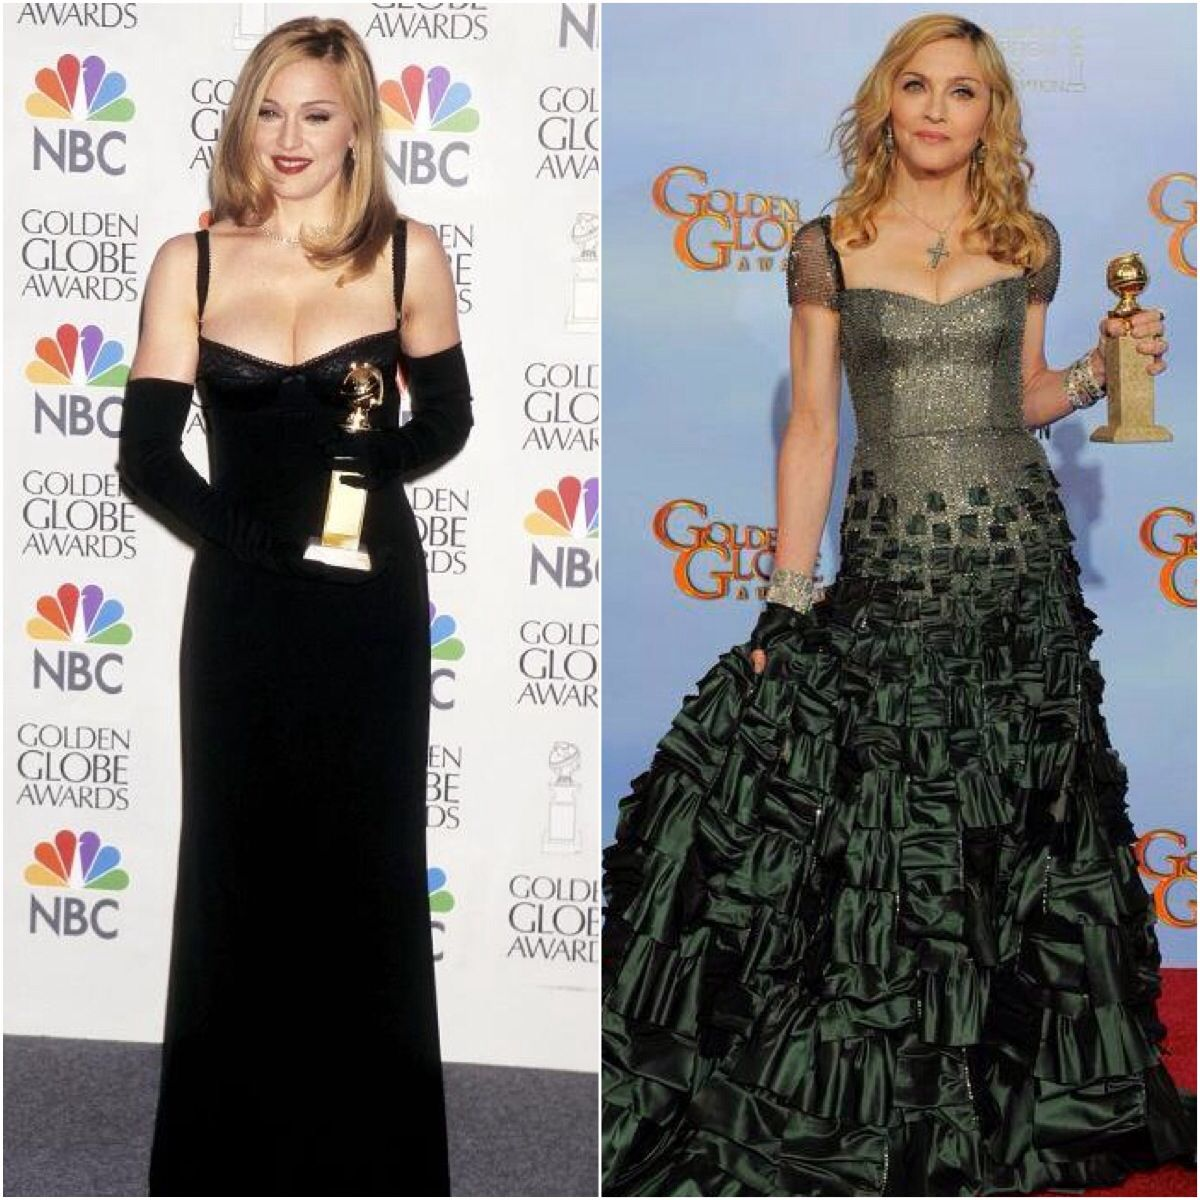 Green n gold dress    Madonna winning the Golden Globe for her lead role as Evita